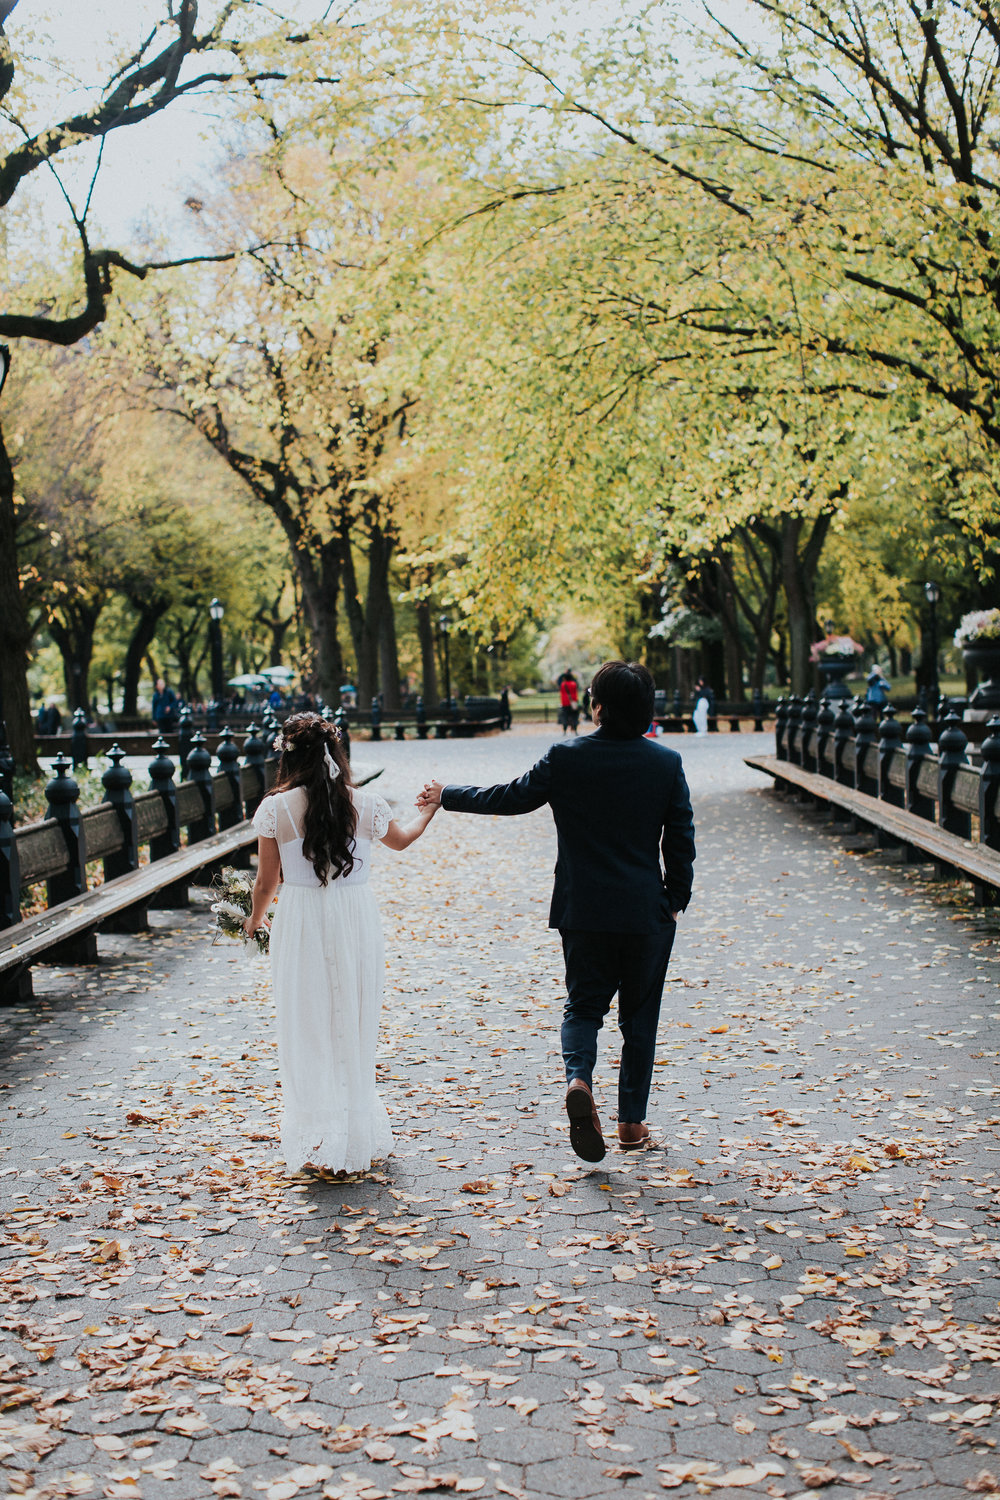 Central-Park-Brooklyn-Bridge-Dumbo-NYC-Documentary-Wedding-Photographer-44.jpg